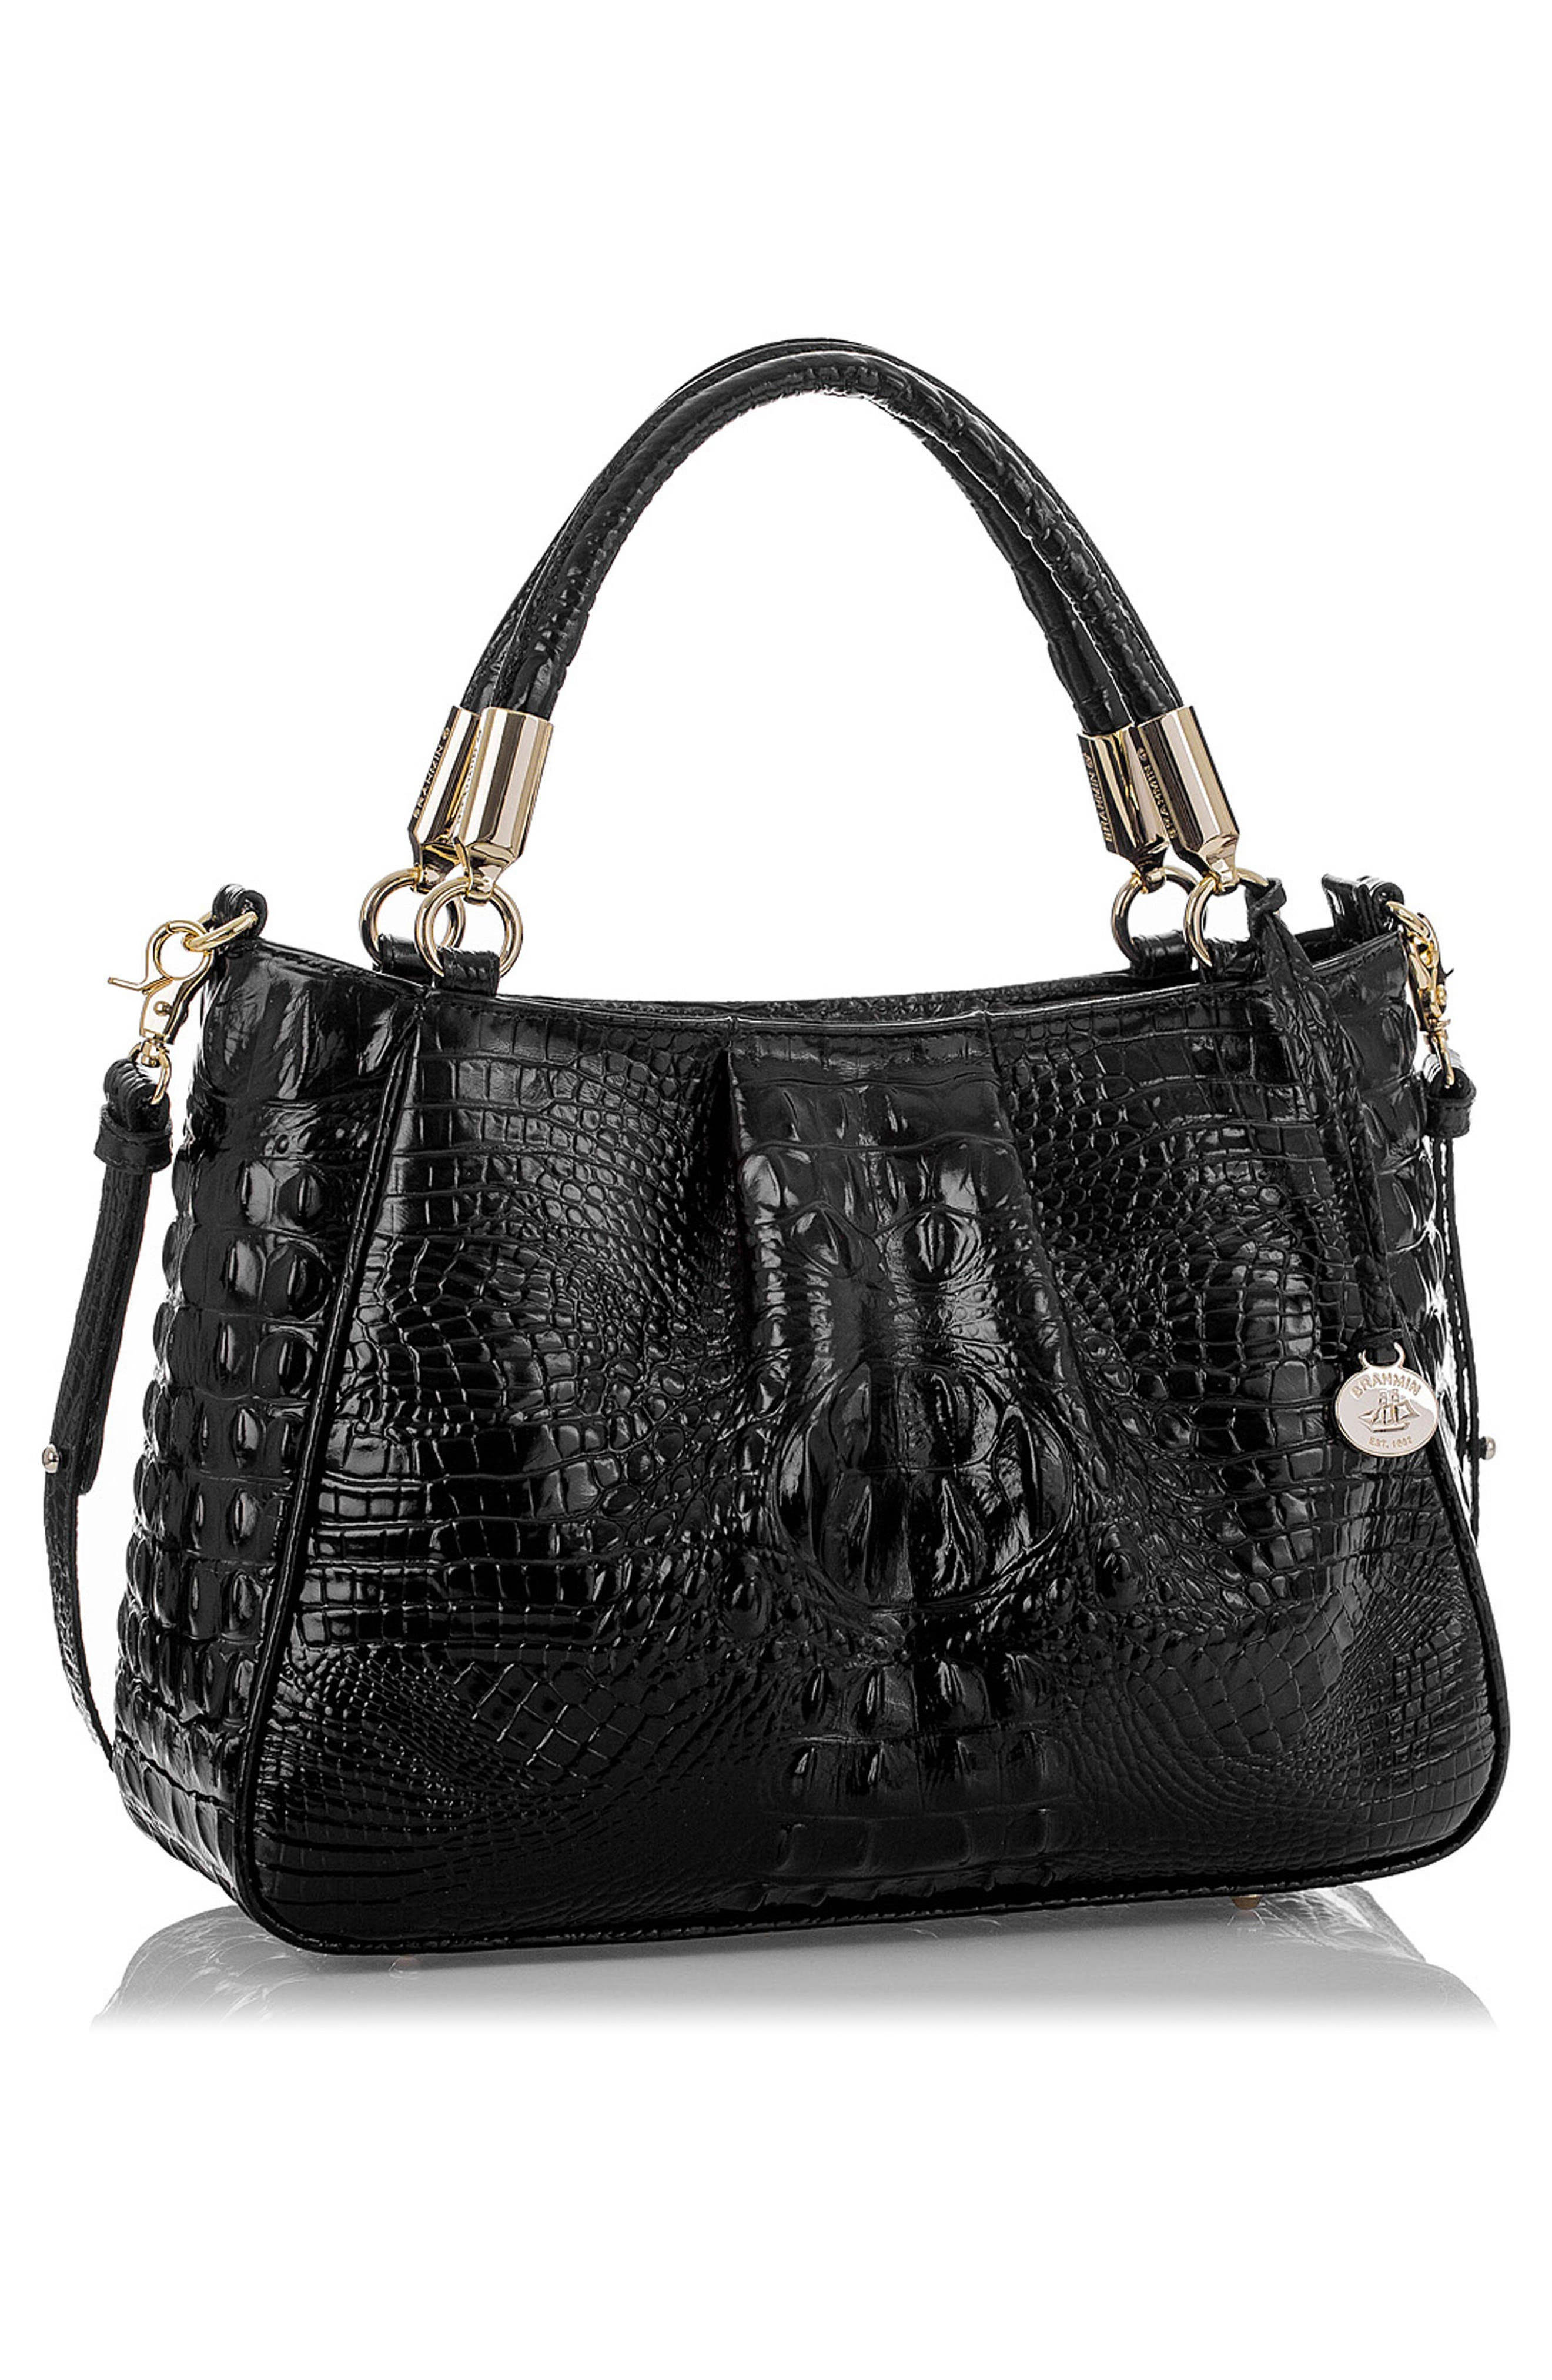 Ruby Croc Embossed Leather Satchel,                             Alternate thumbnail 4, color,                             001